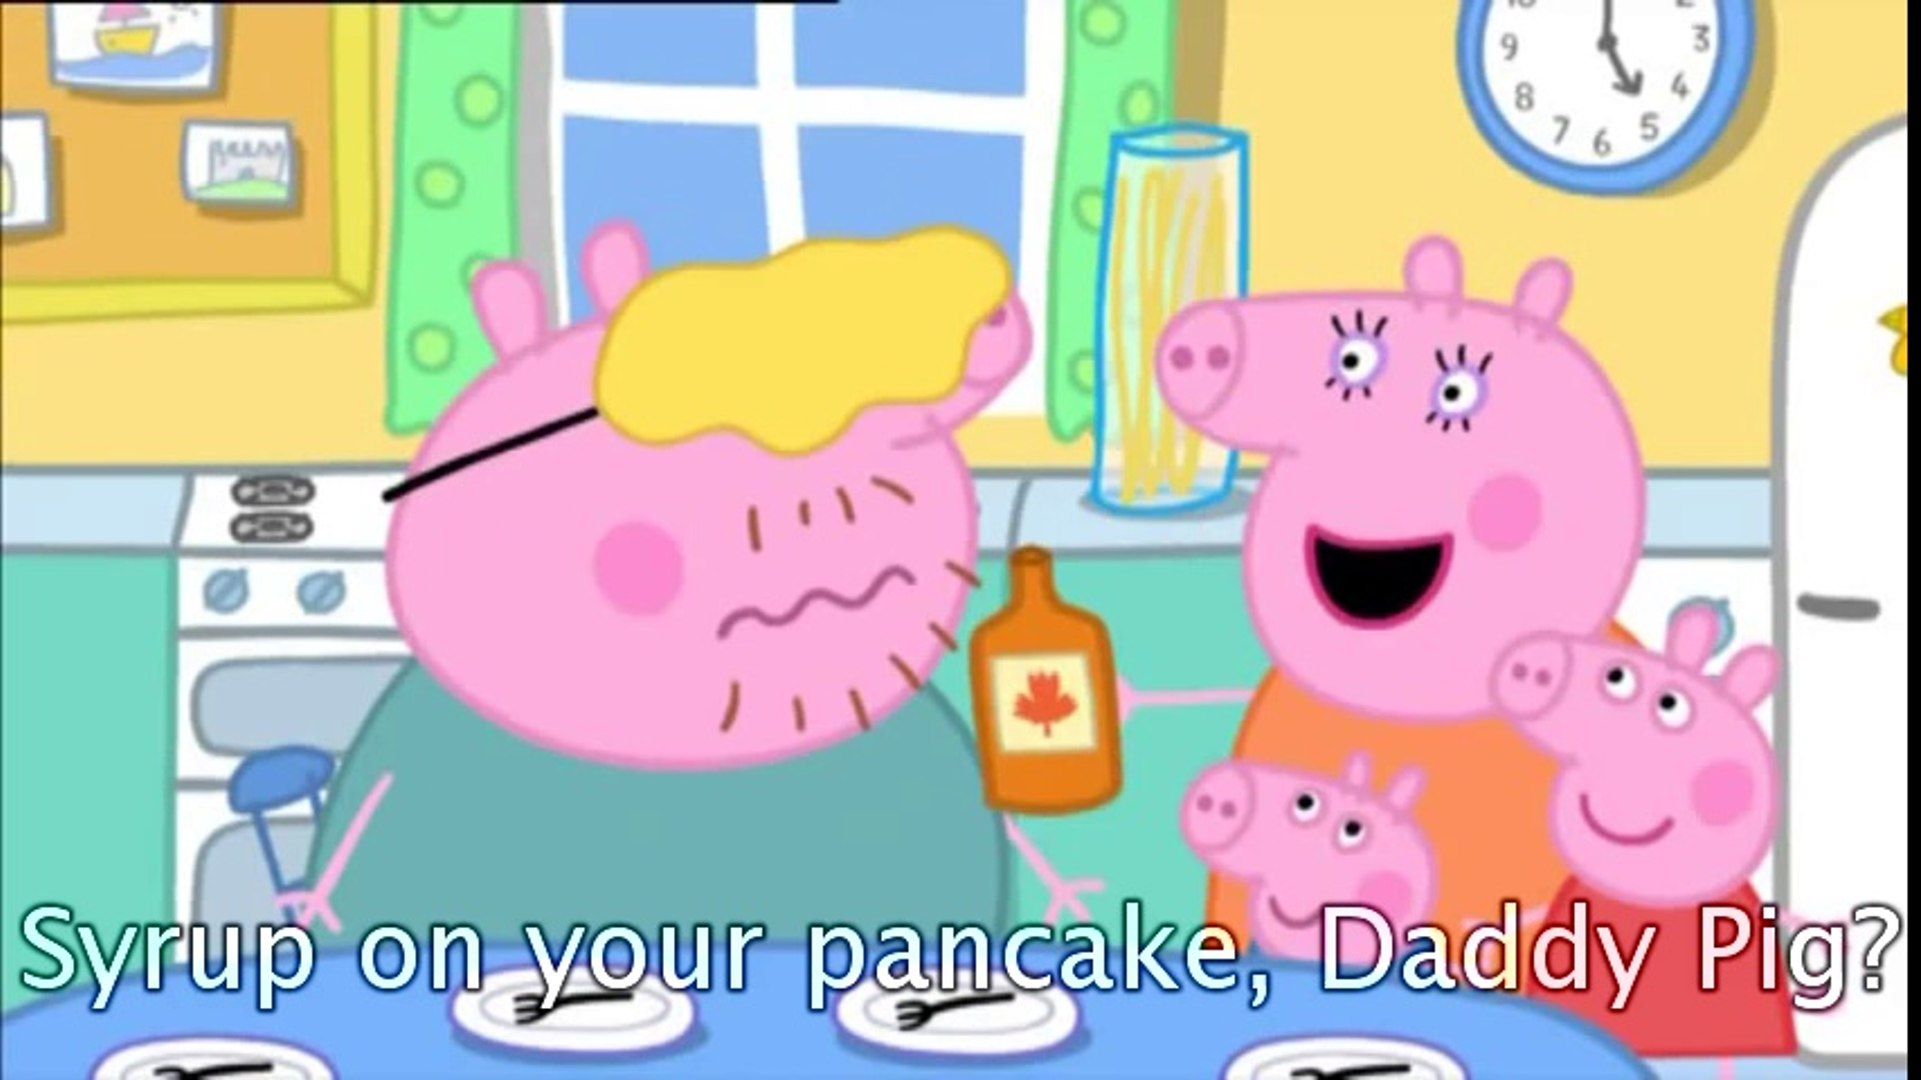 Peppa Pig Pancakes with subtitles